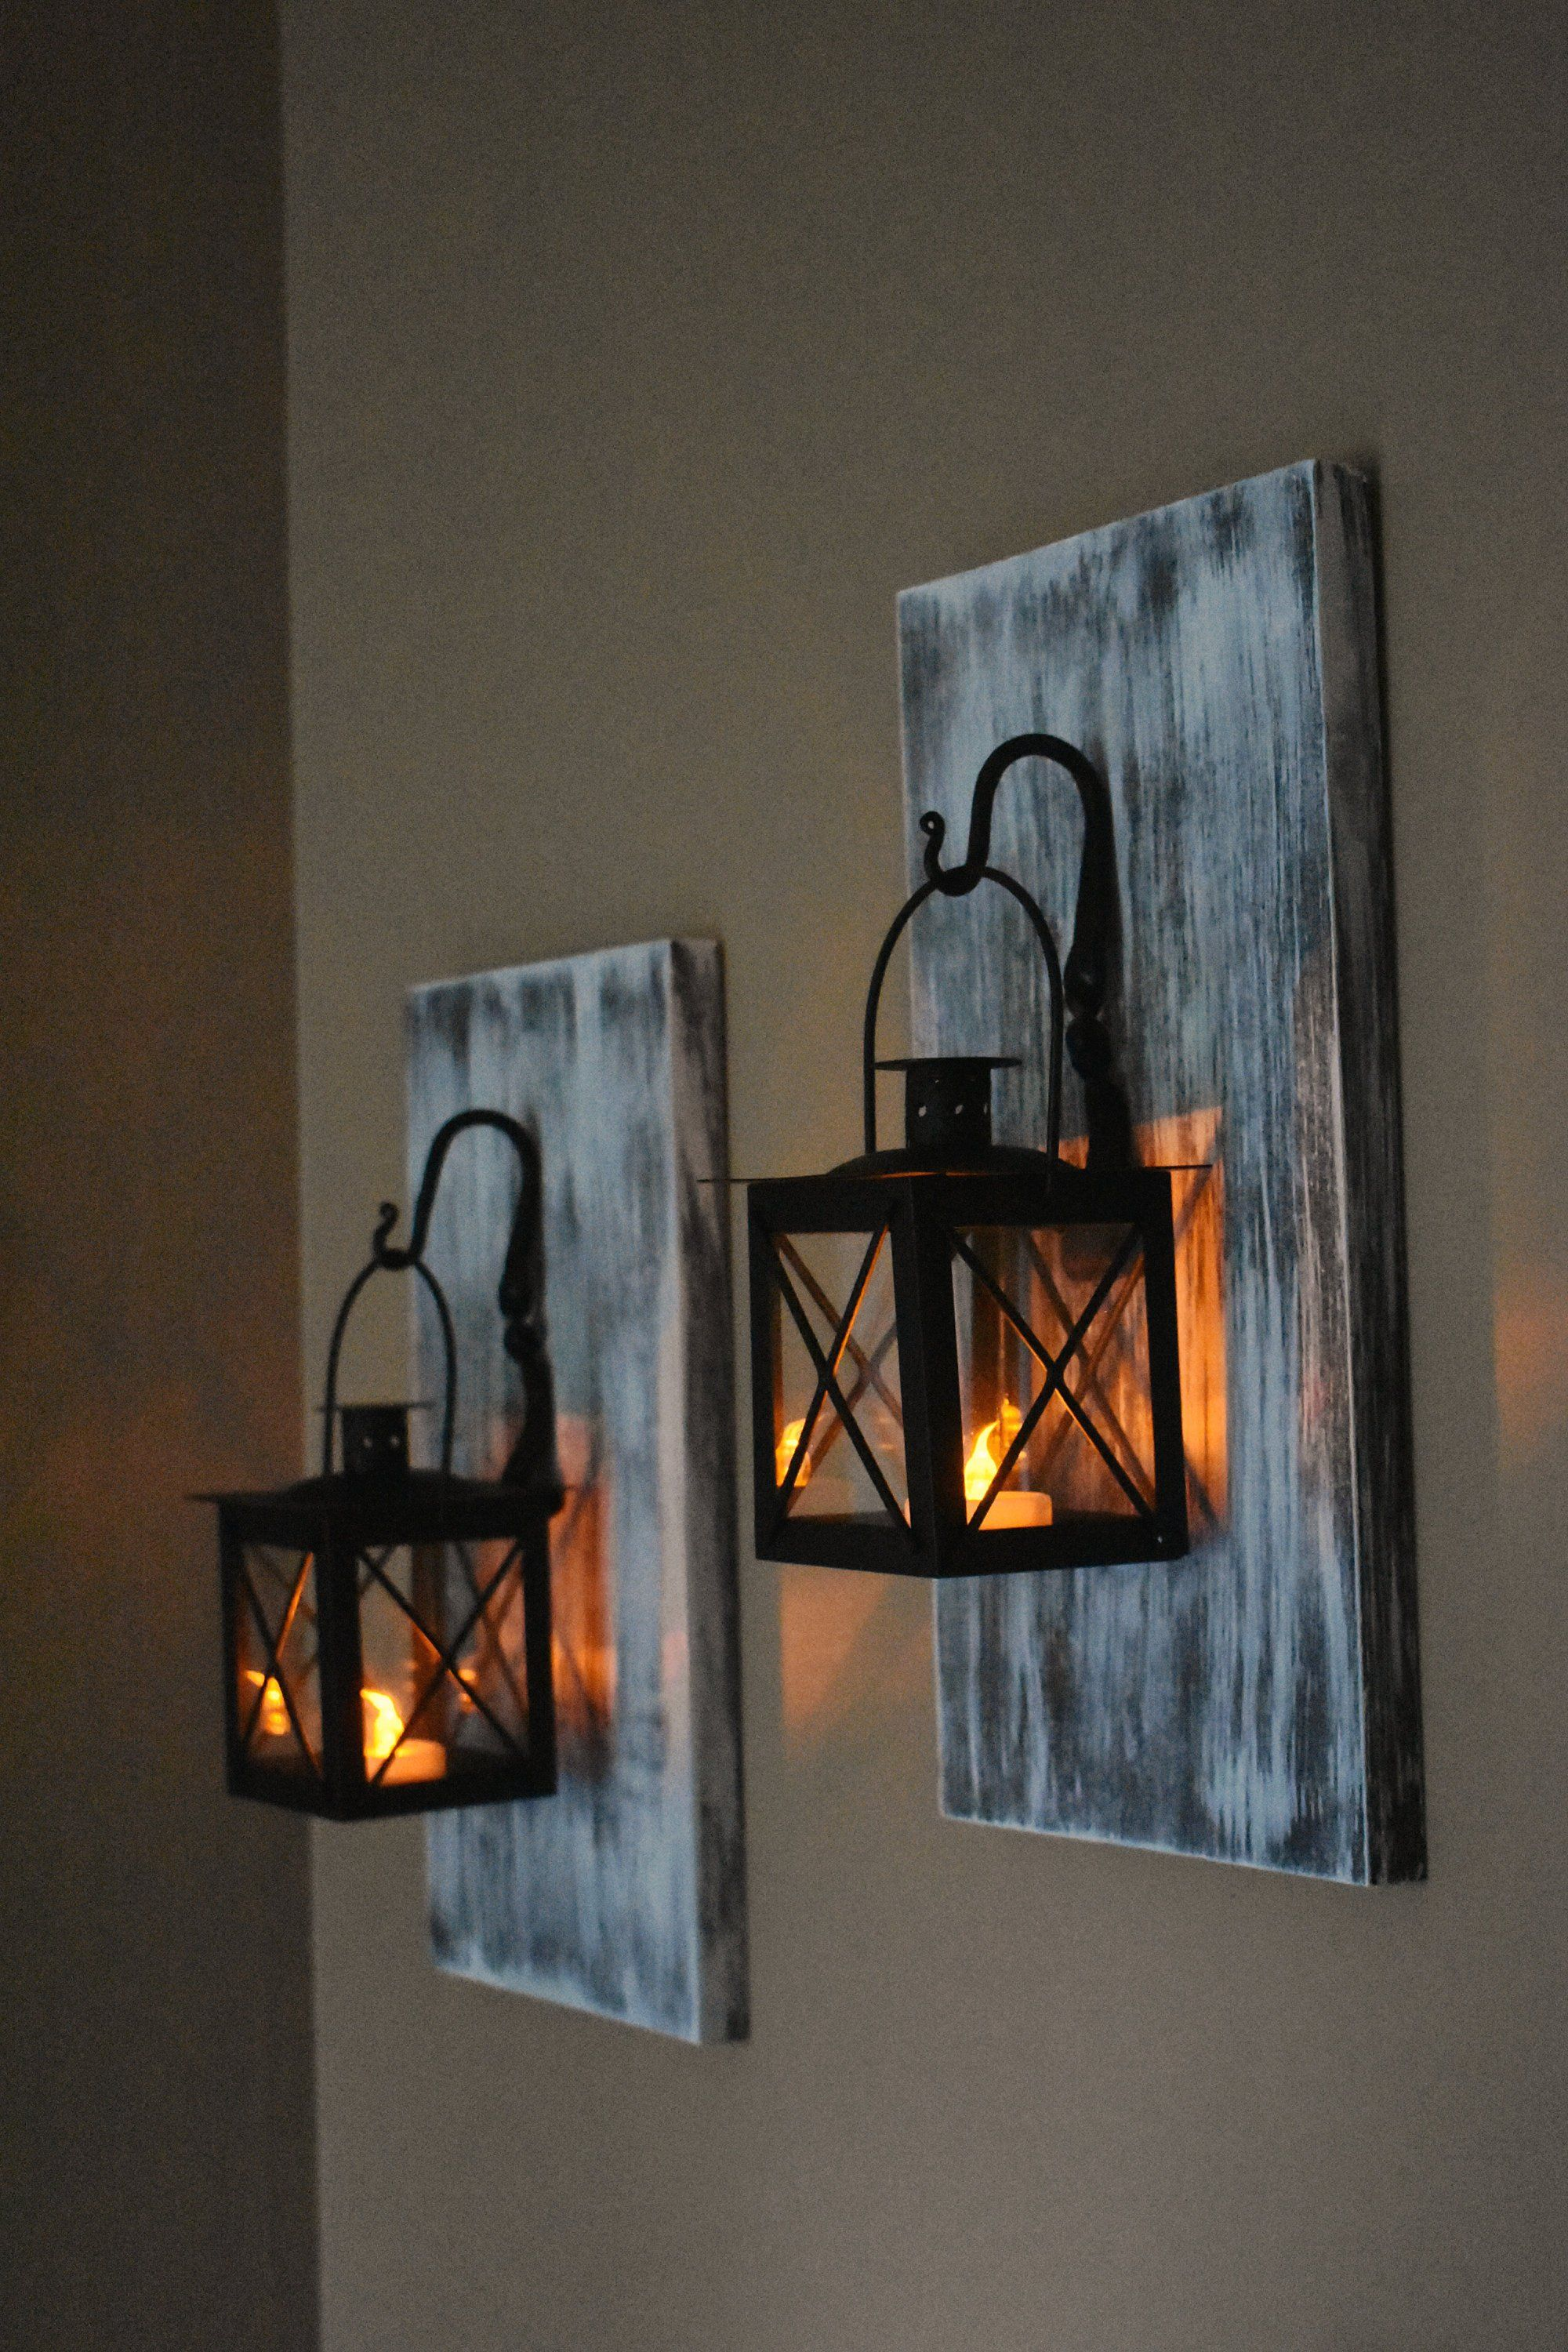 Lantern Sconces Set Of 2 Wall Sconces Farmhouse Home Decor Rustic Wall Decor Wall Sconces Candle Scon Wall Sconces Rustic Wall Decor Candle Sconces